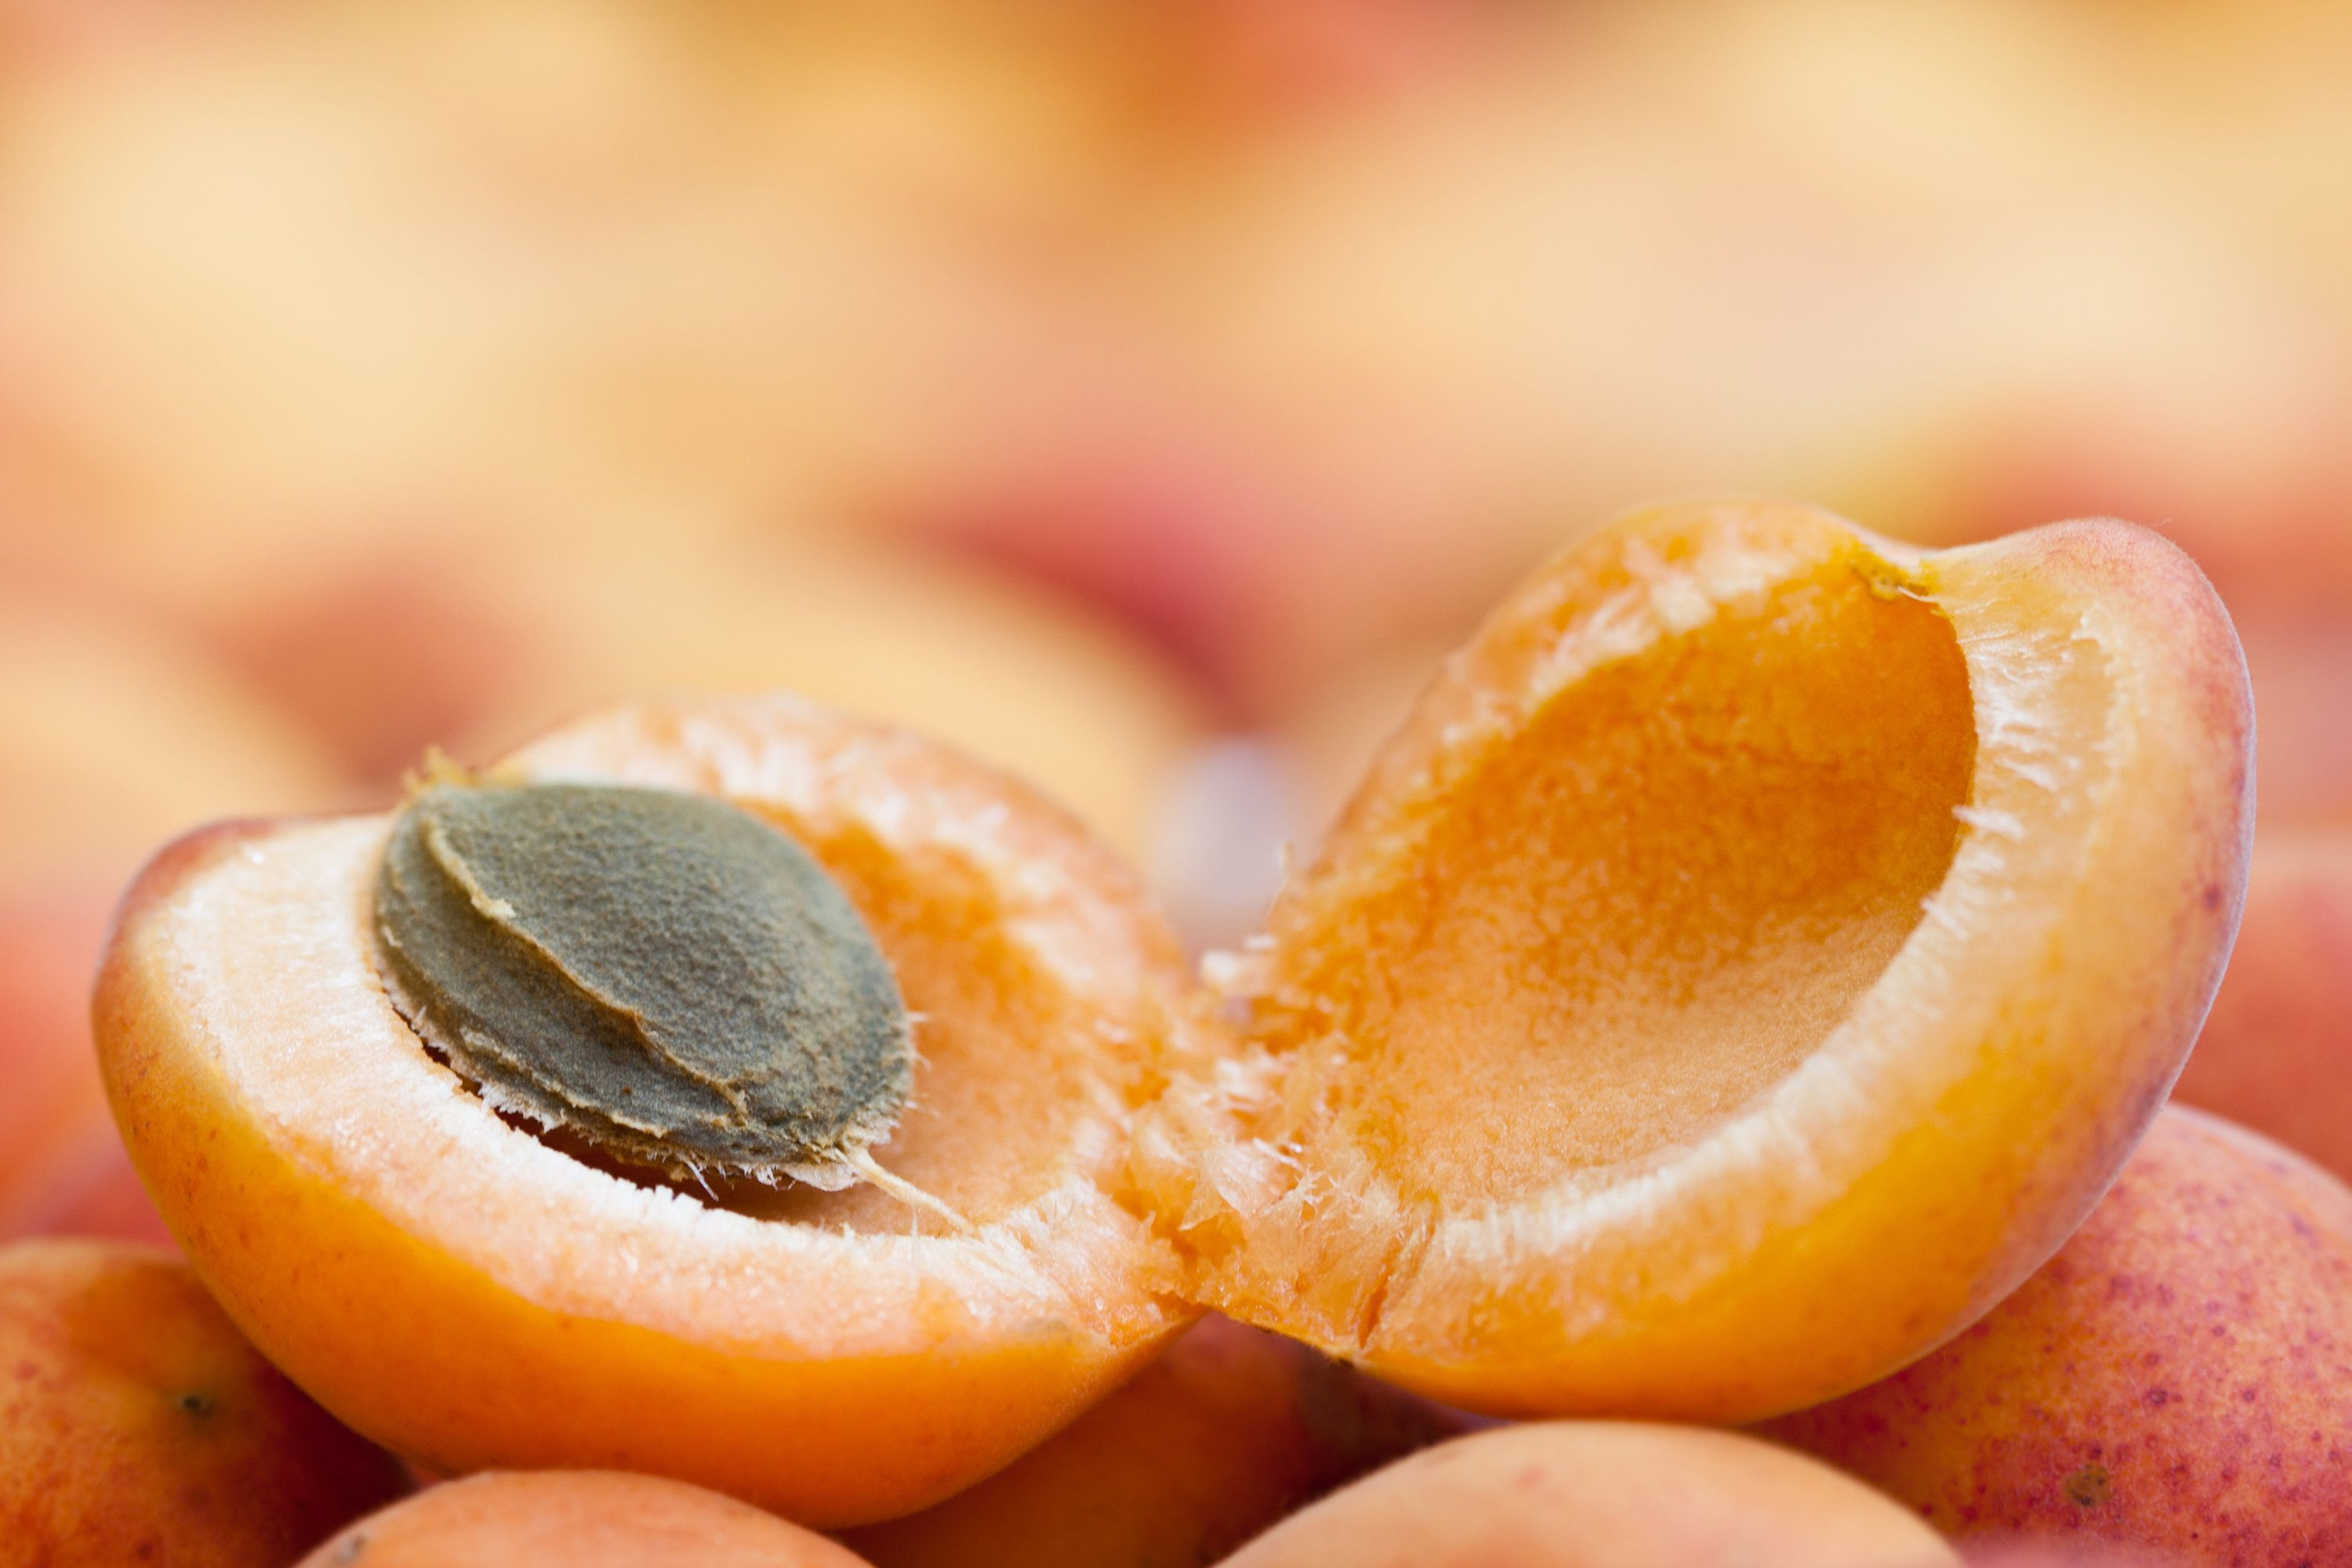 Beware that natural medicine: Australian man poisoned by apricot extract